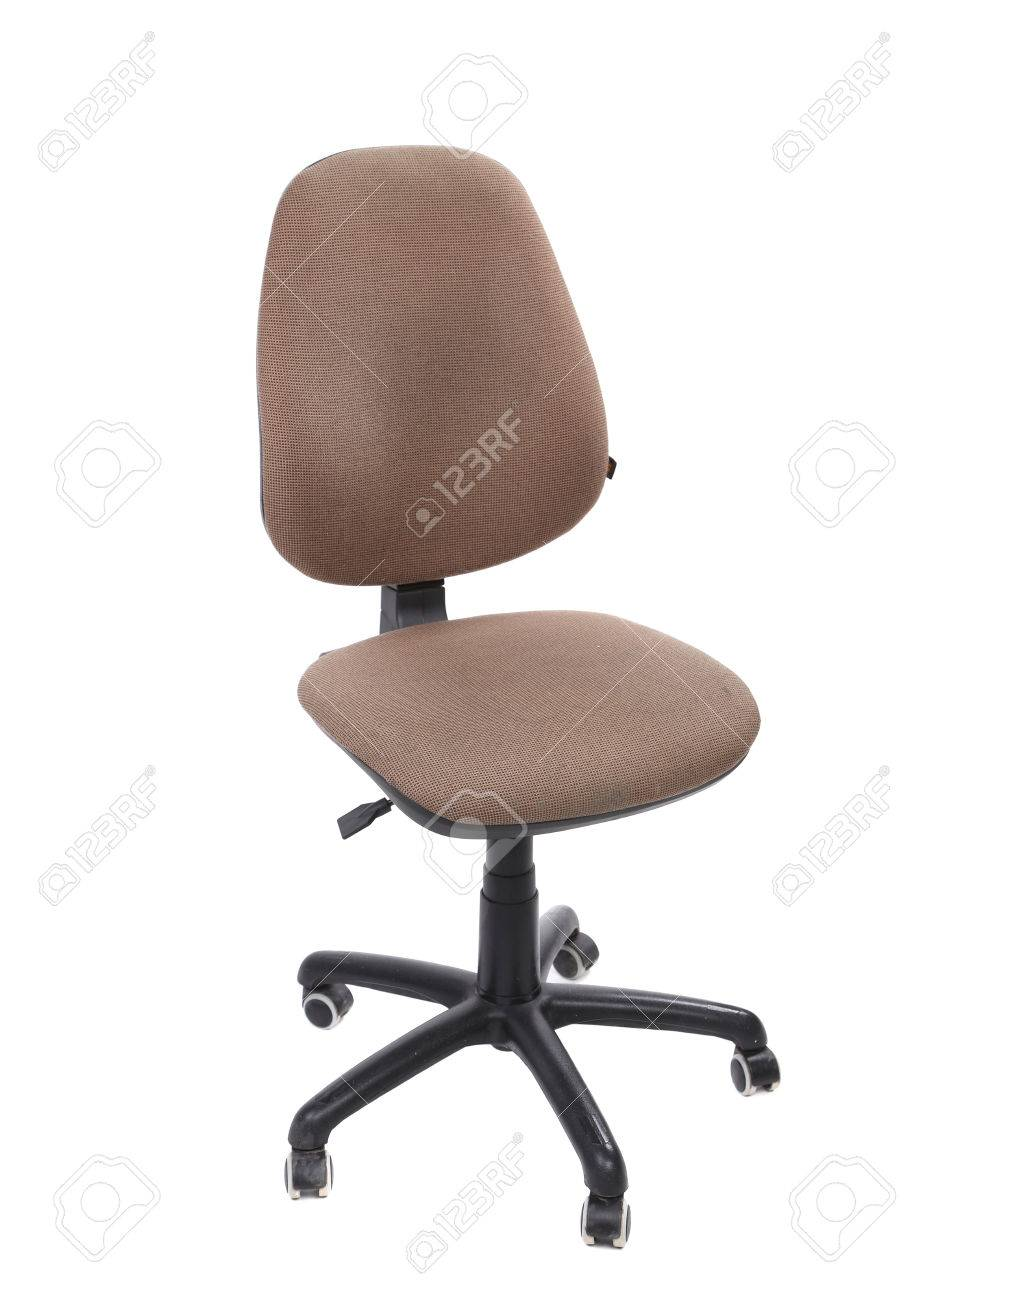 beige color office chair. isolated on a white . stock photo